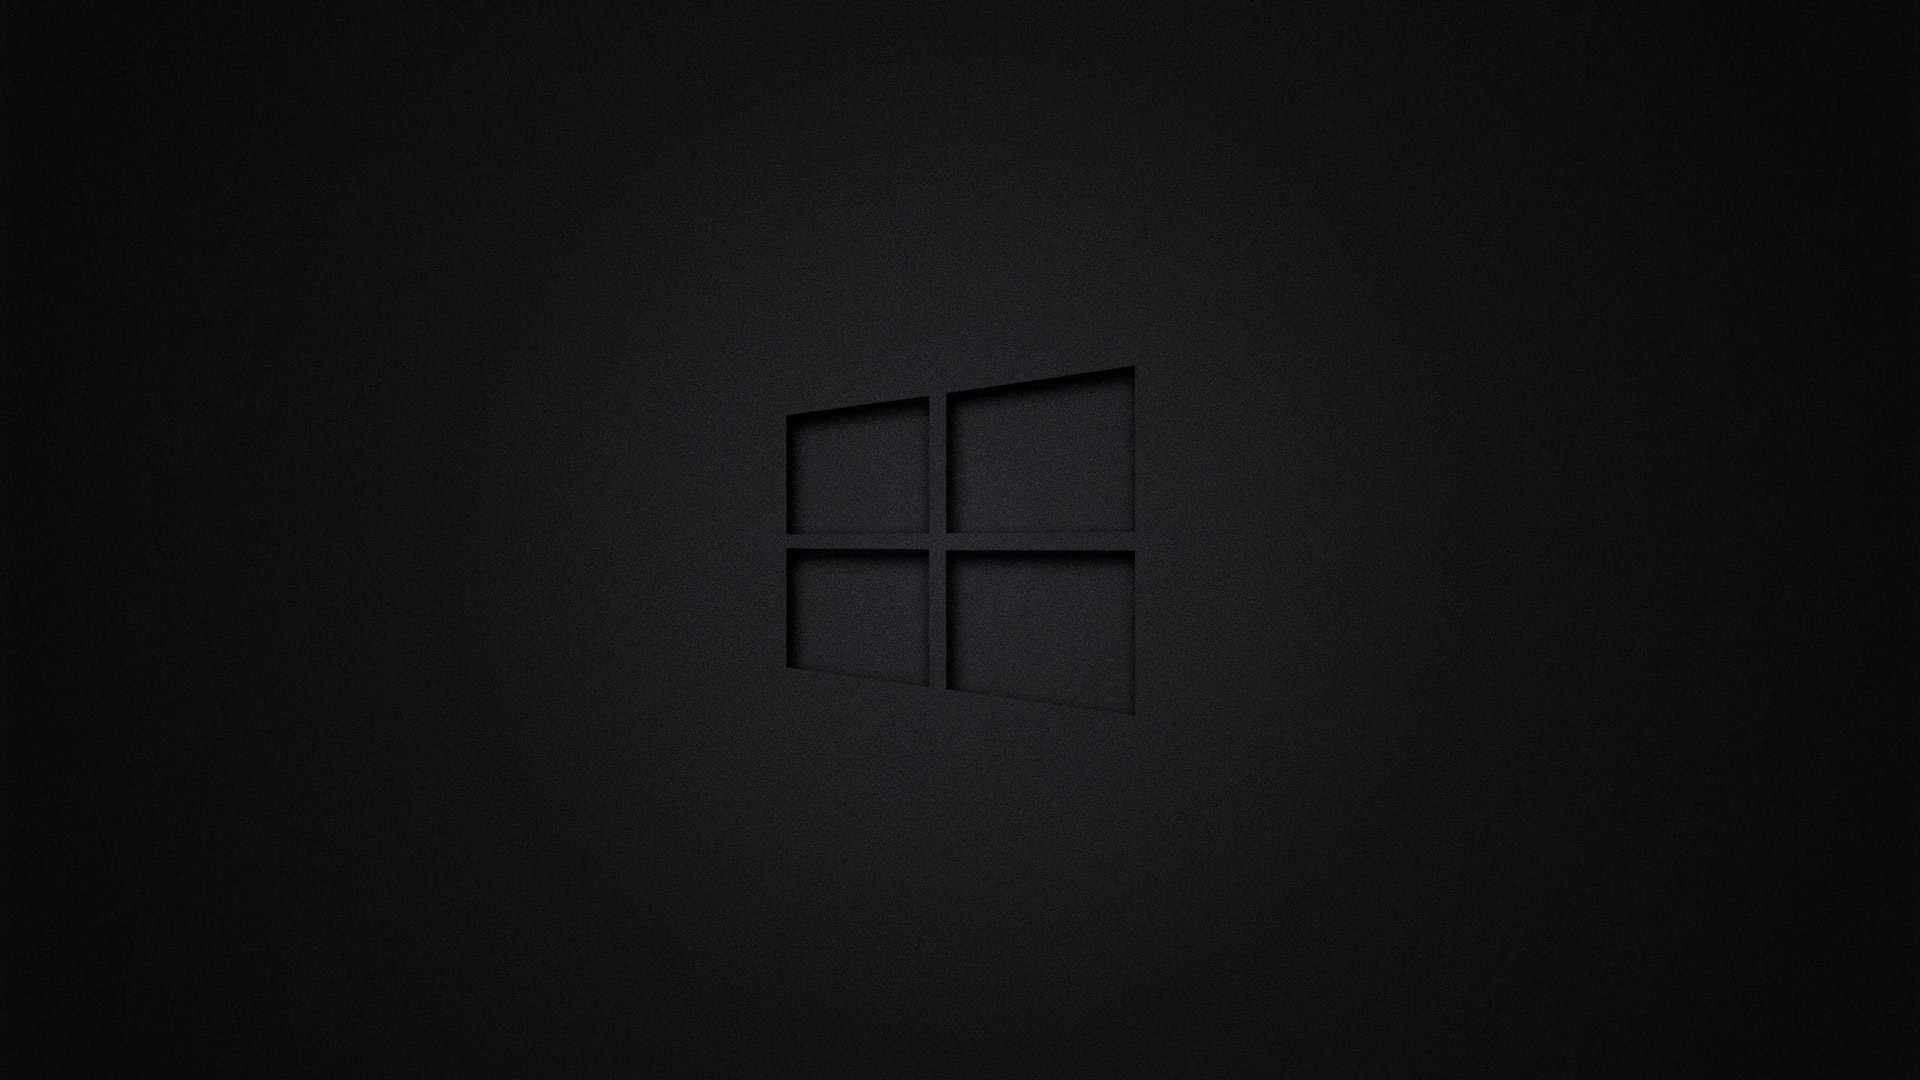 Windows 10 Dark HD Computer 4k Wallpapers Images Backgrounds